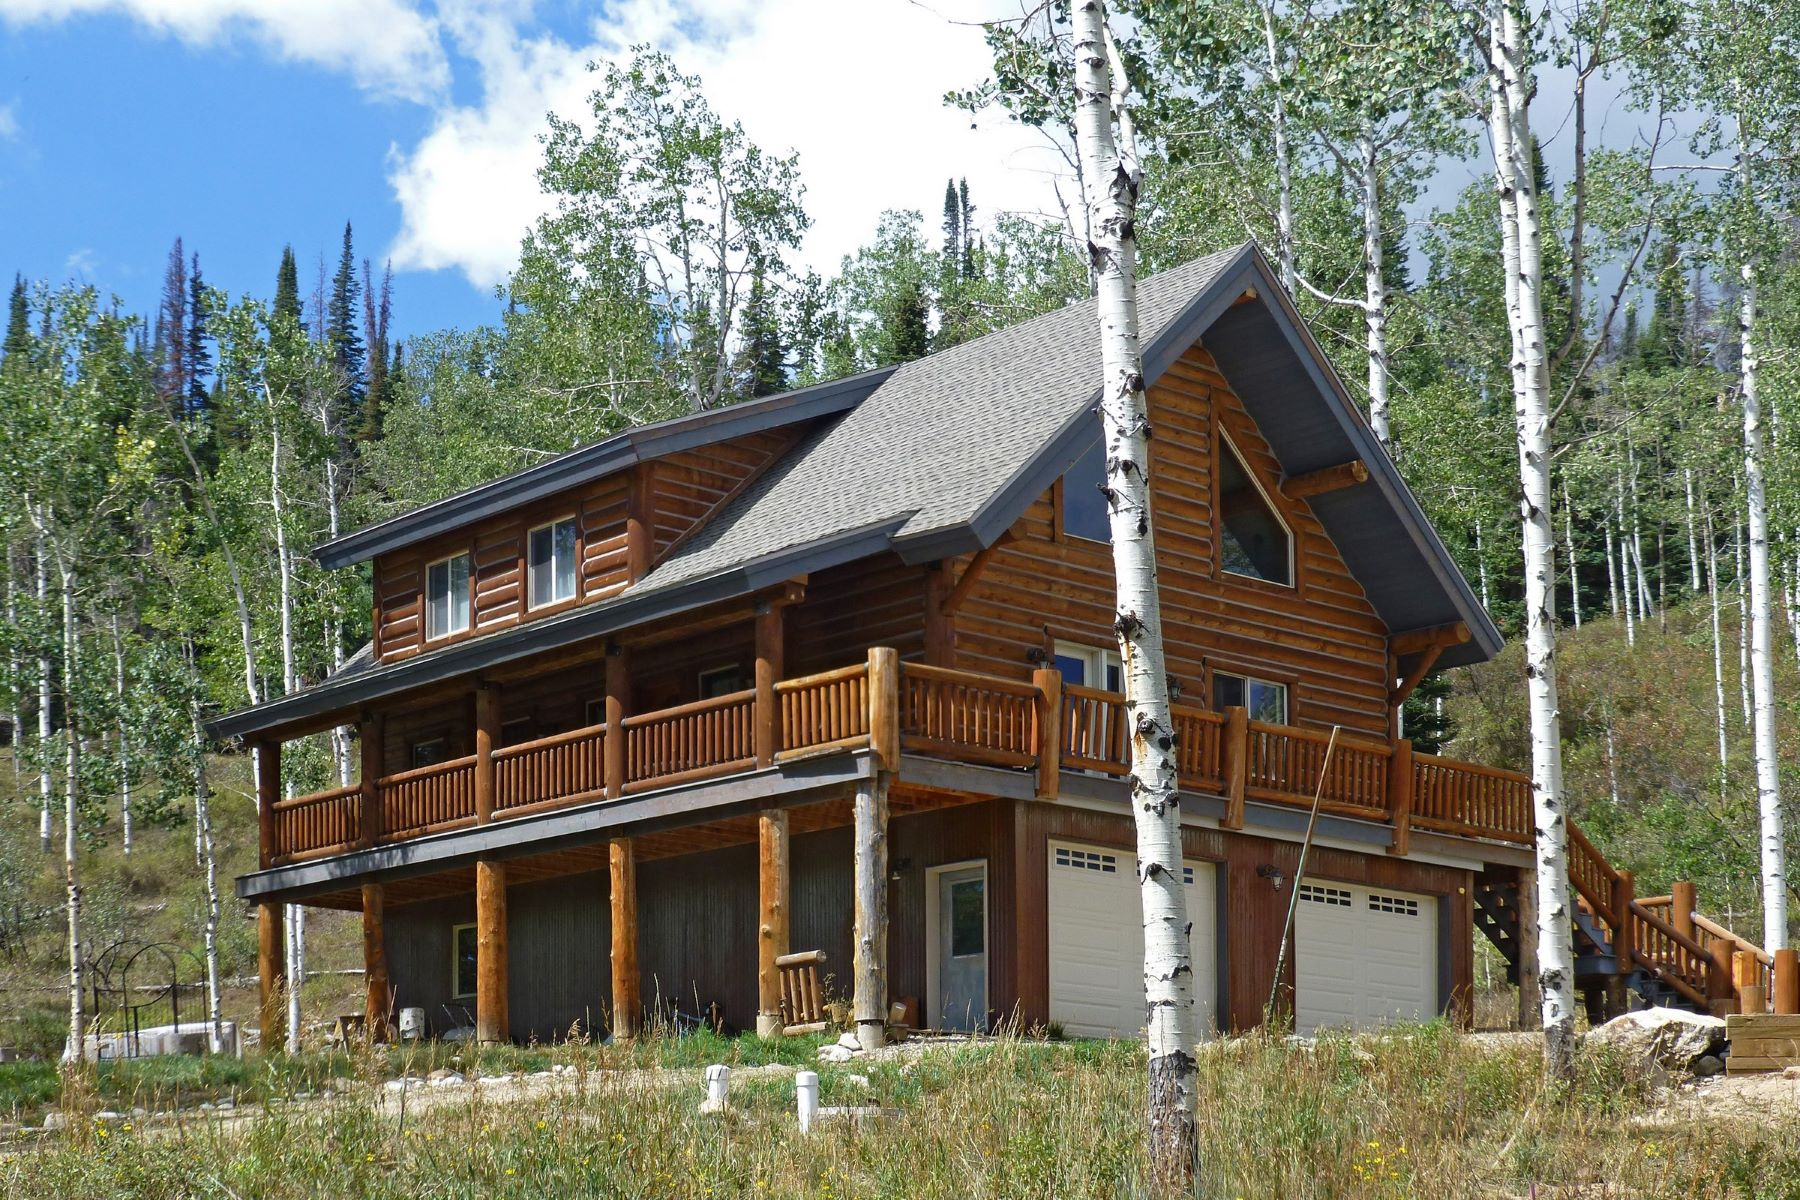 Villa per Vendita alle ore Steamboat Lakes Home 59335 Cripple Creek Ct Clark, Colorado, 80428 Stati Uniti